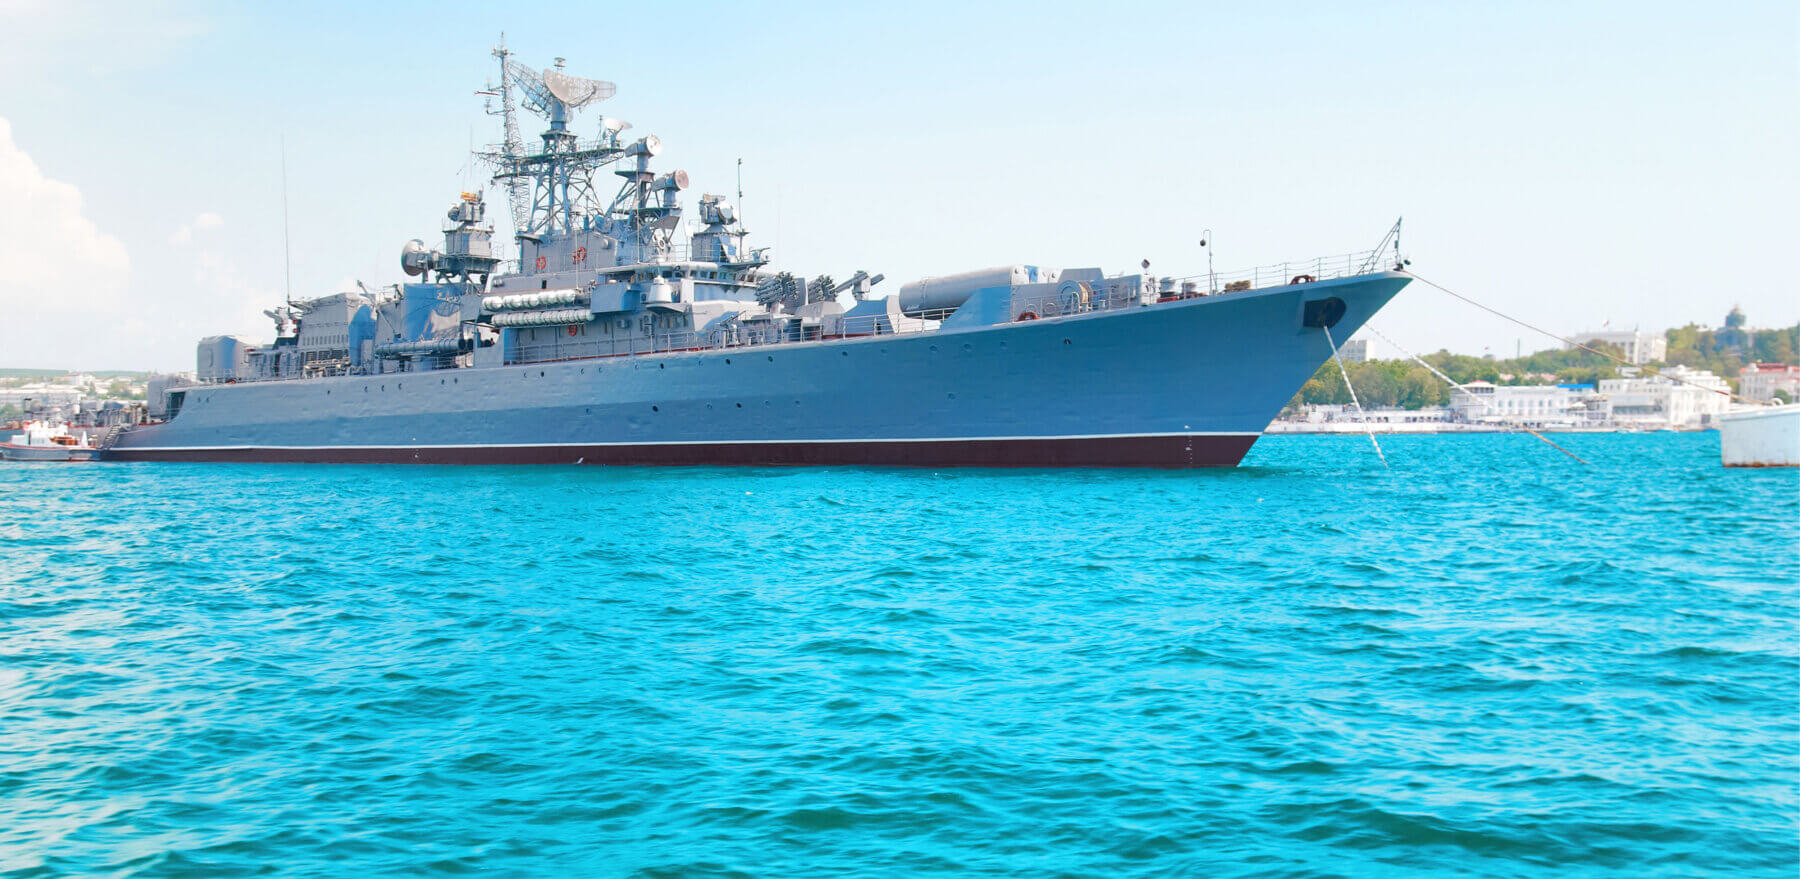 Military navy ship in blue sea with sky and clouds